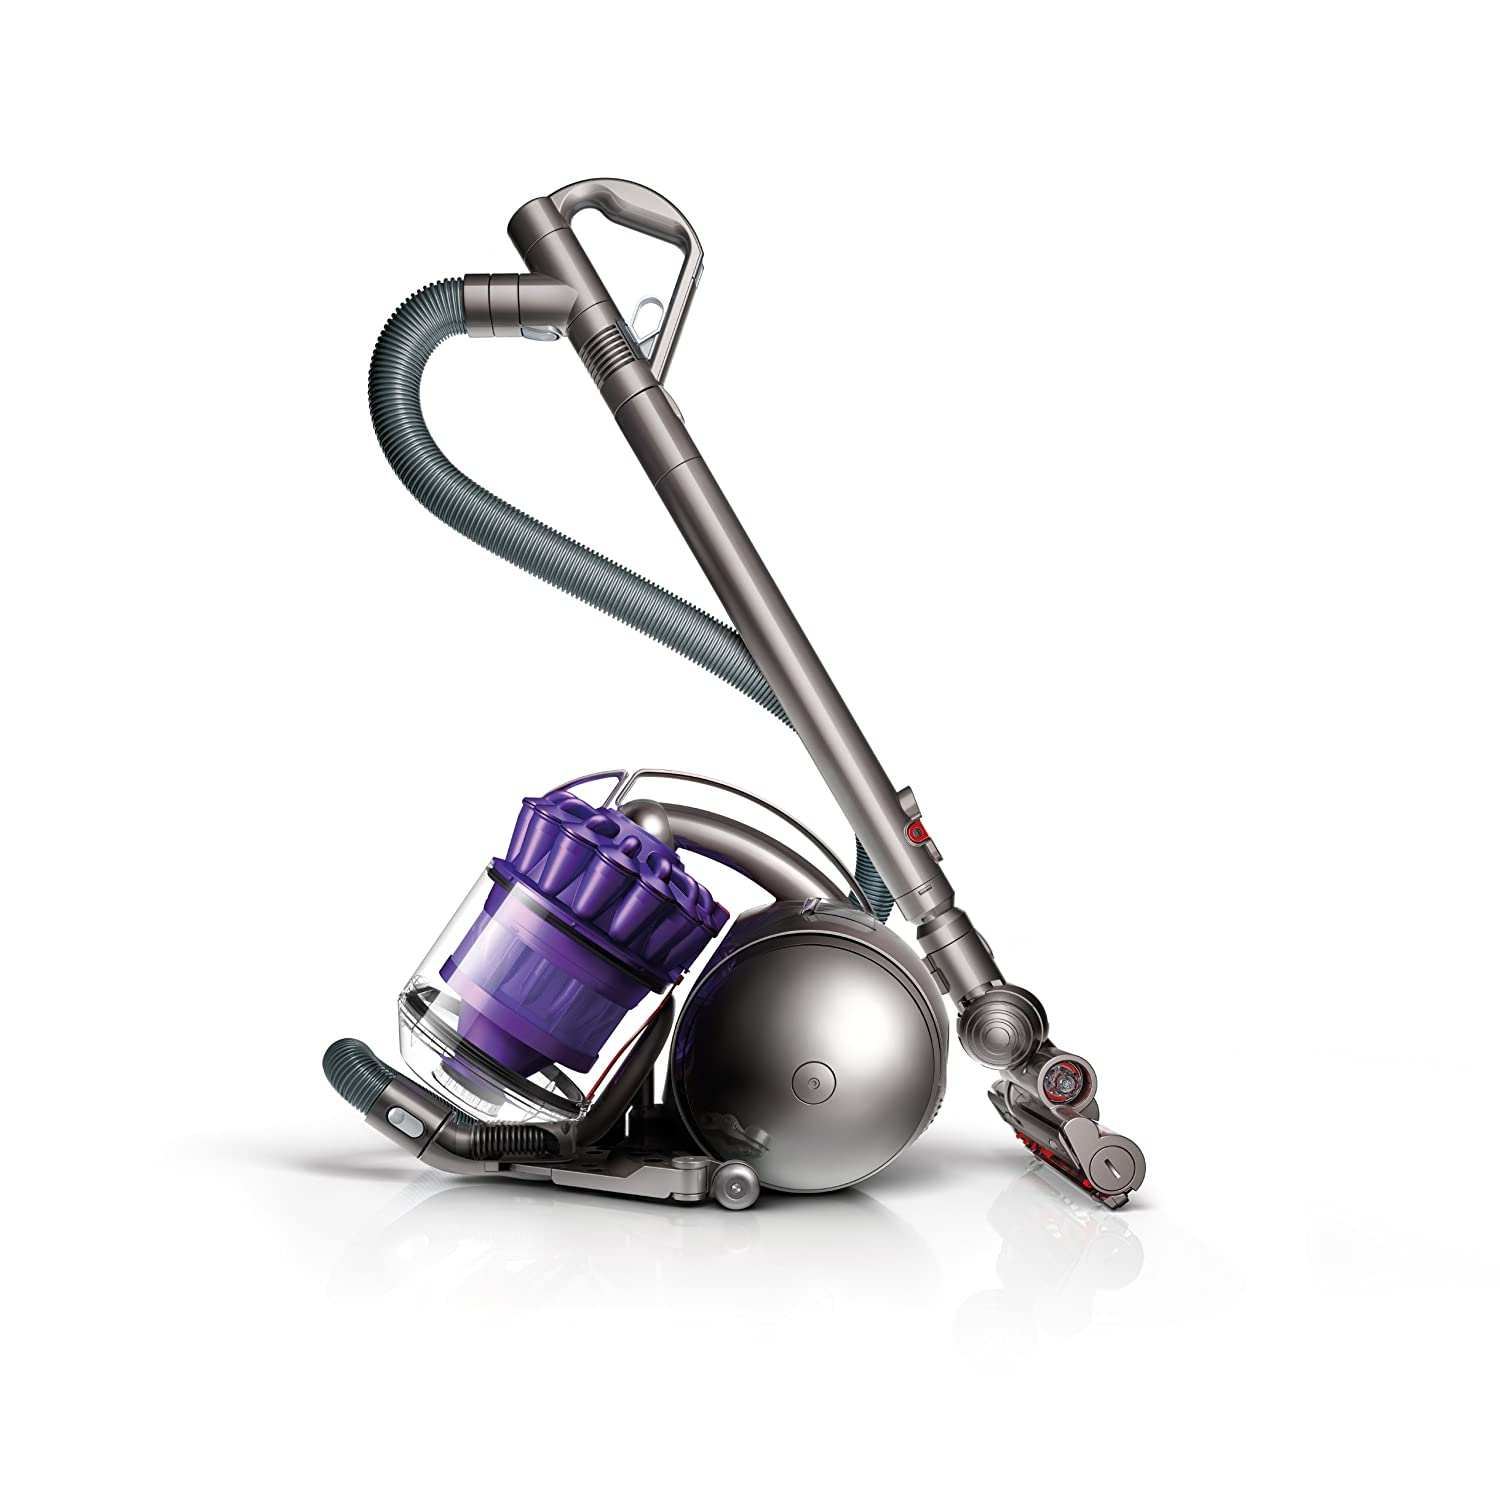 Amazon  Dyson Dc39 Animal Canister Vacuum Cleaner  Household Canister  Vacuums